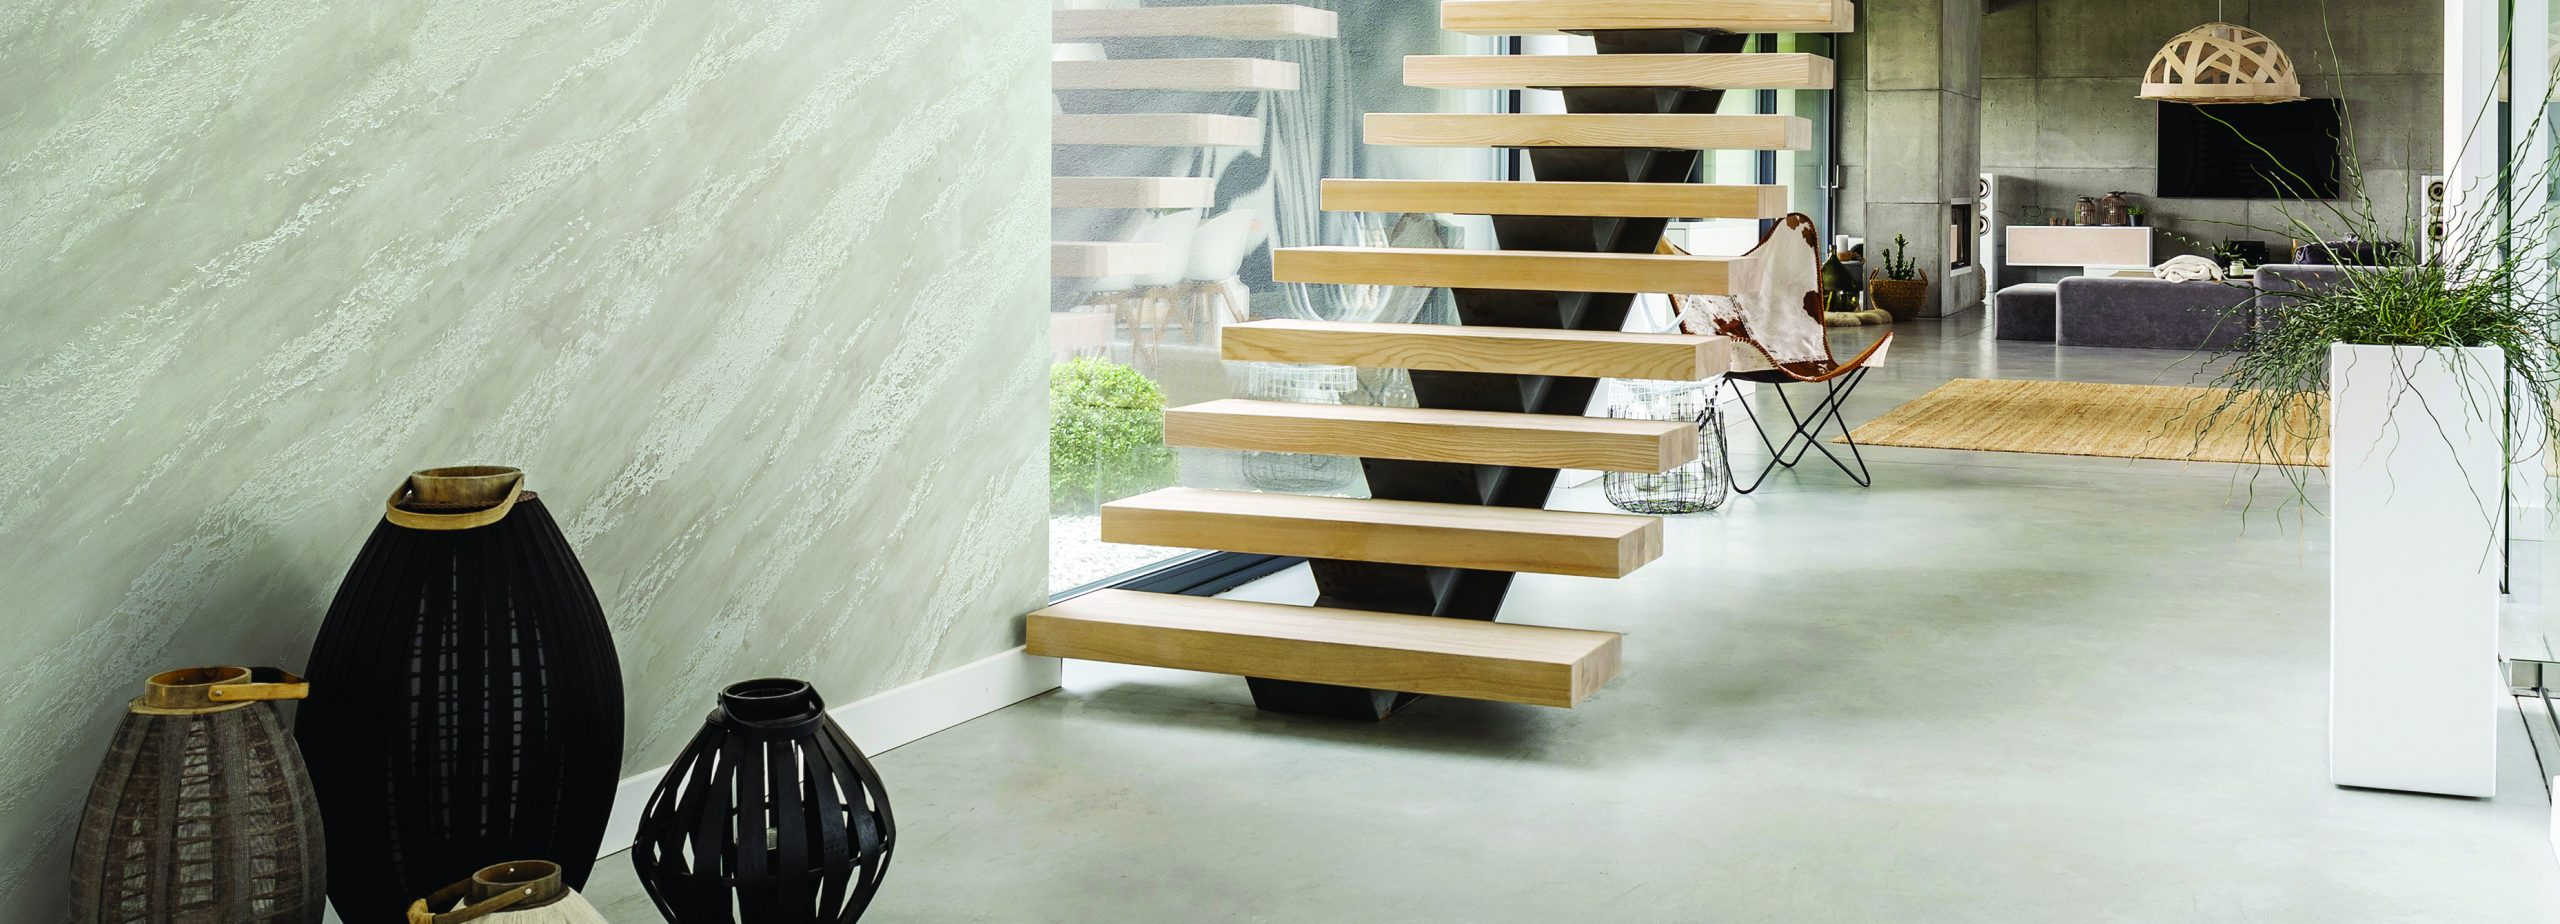 Stairs in the hallway